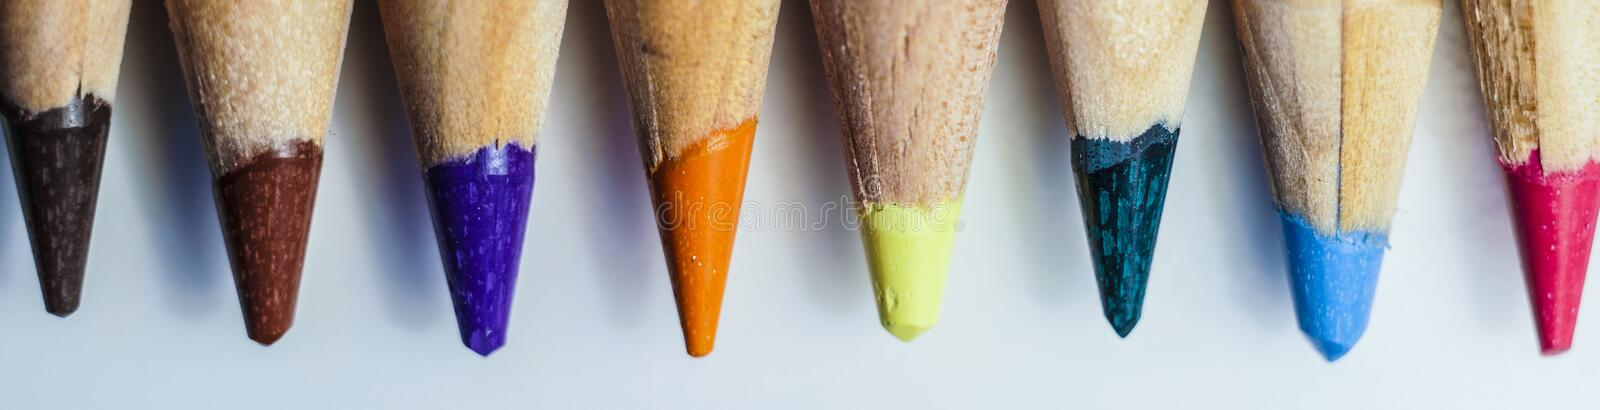 Colored pencil tips royalty free stock photography